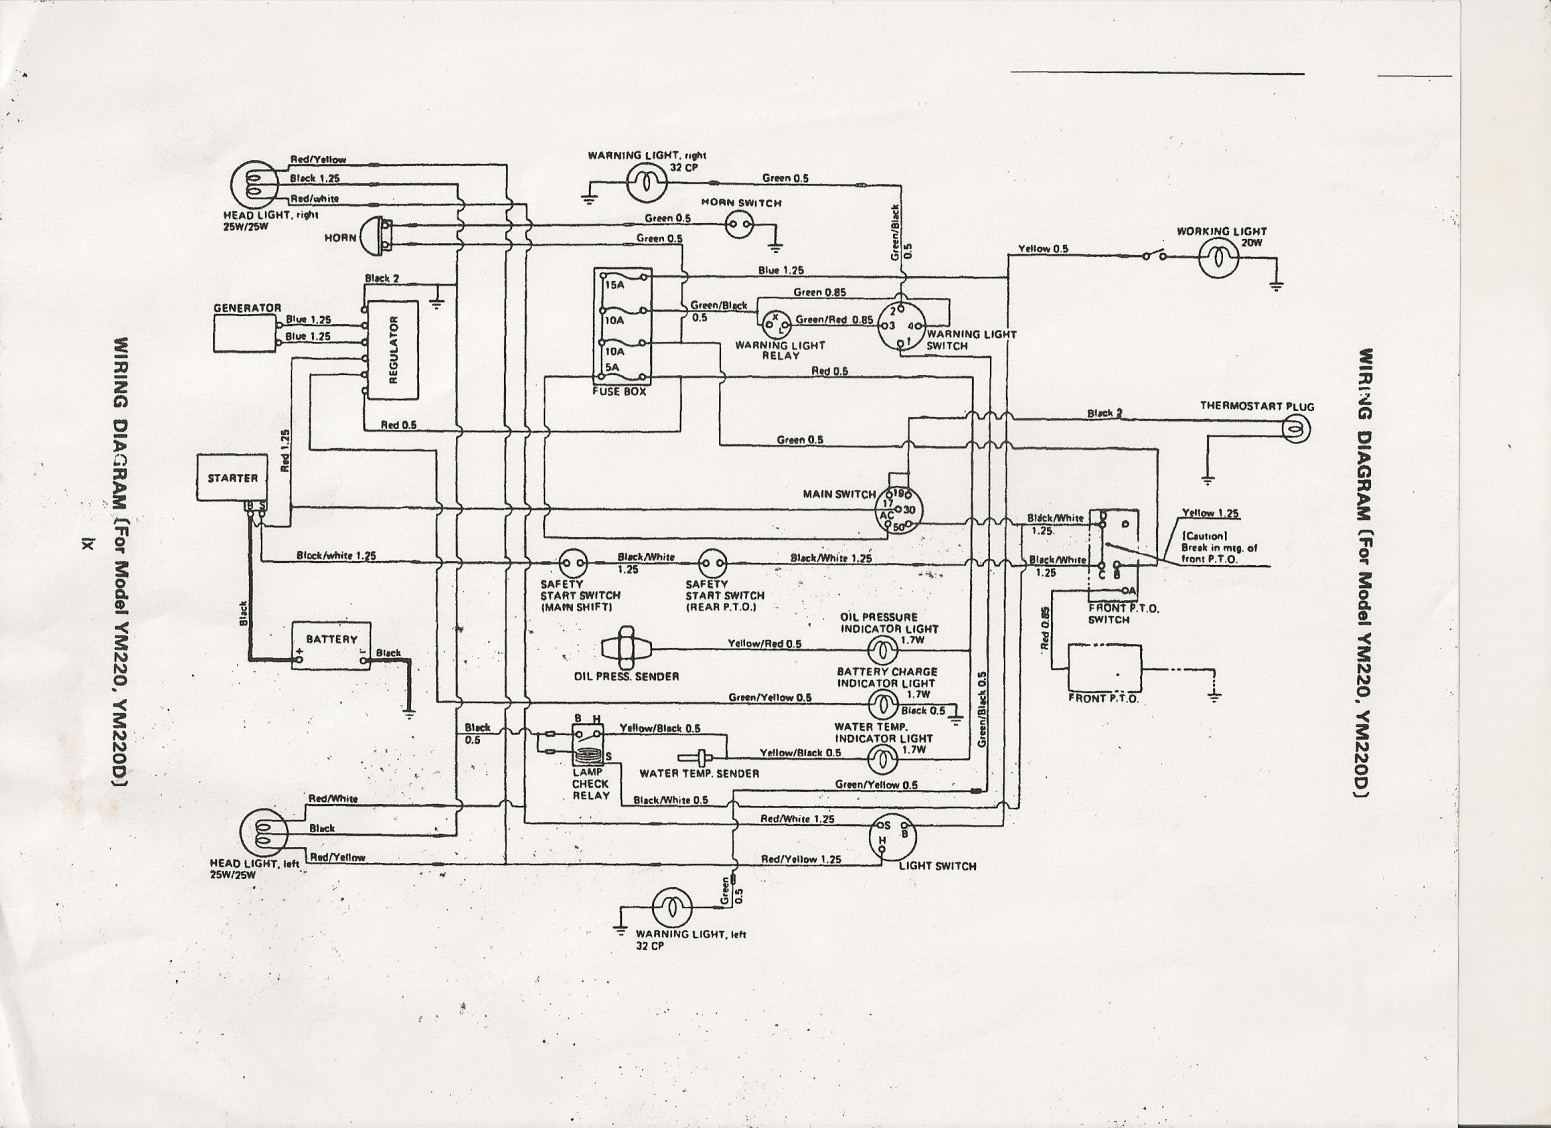 wiring diagram for yanmar 1401d wiring wiring diagrams wiring diagram for yanmar d a few issues yanmar 1510 mytractorforum com the